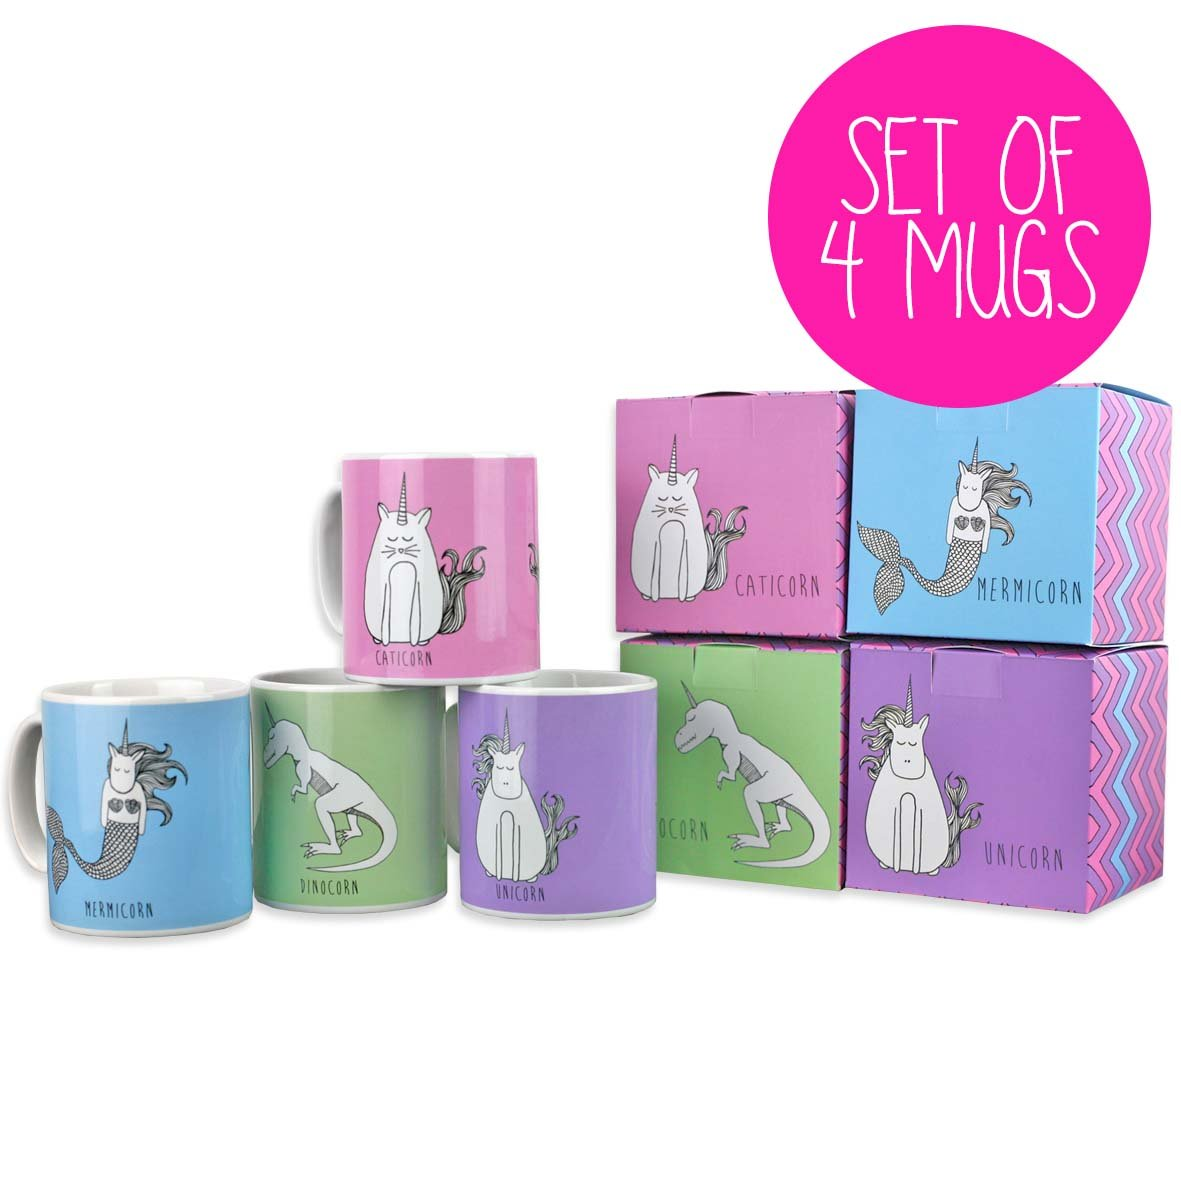 Set of 4 unicorn mugs with matching gift boxes